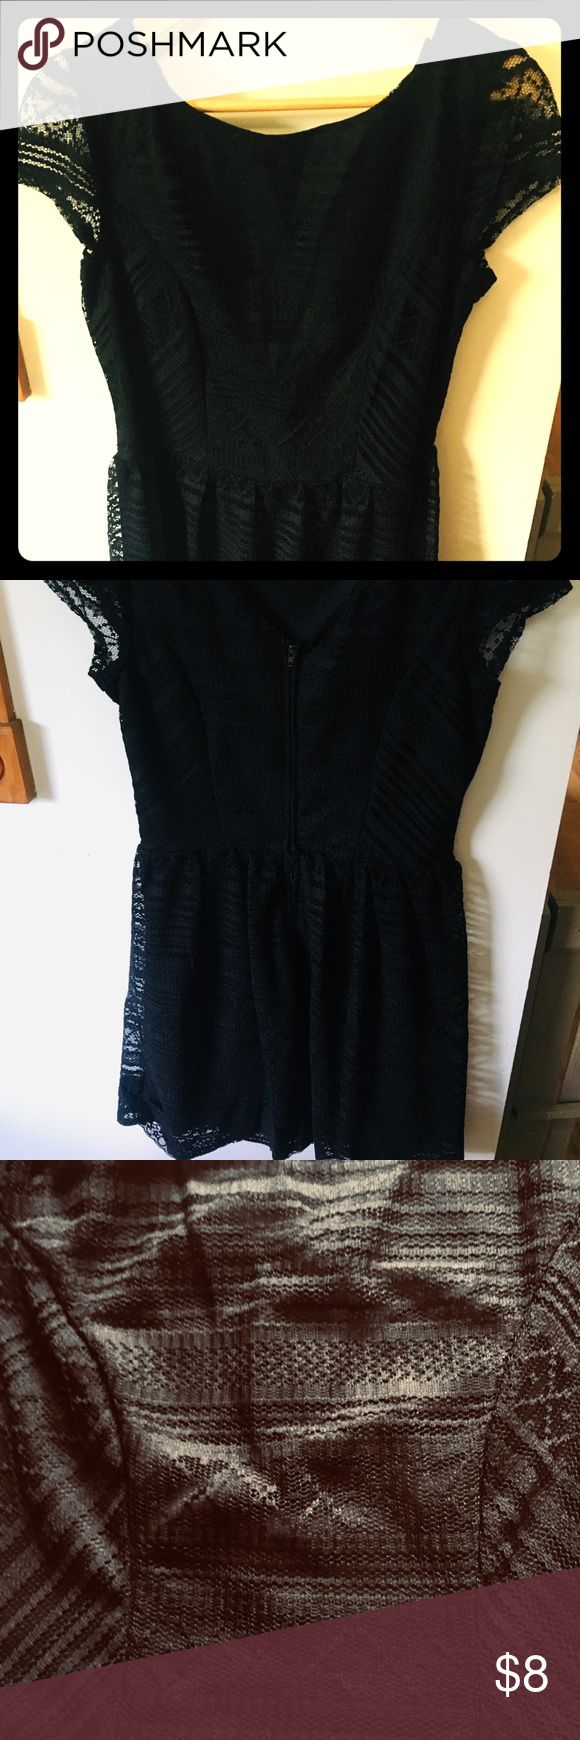 Little Black Dress Size 13 Little black dress. Knee Length. Only worn once. Delicate knitted design with a black slip underneath. Great for a date nig…